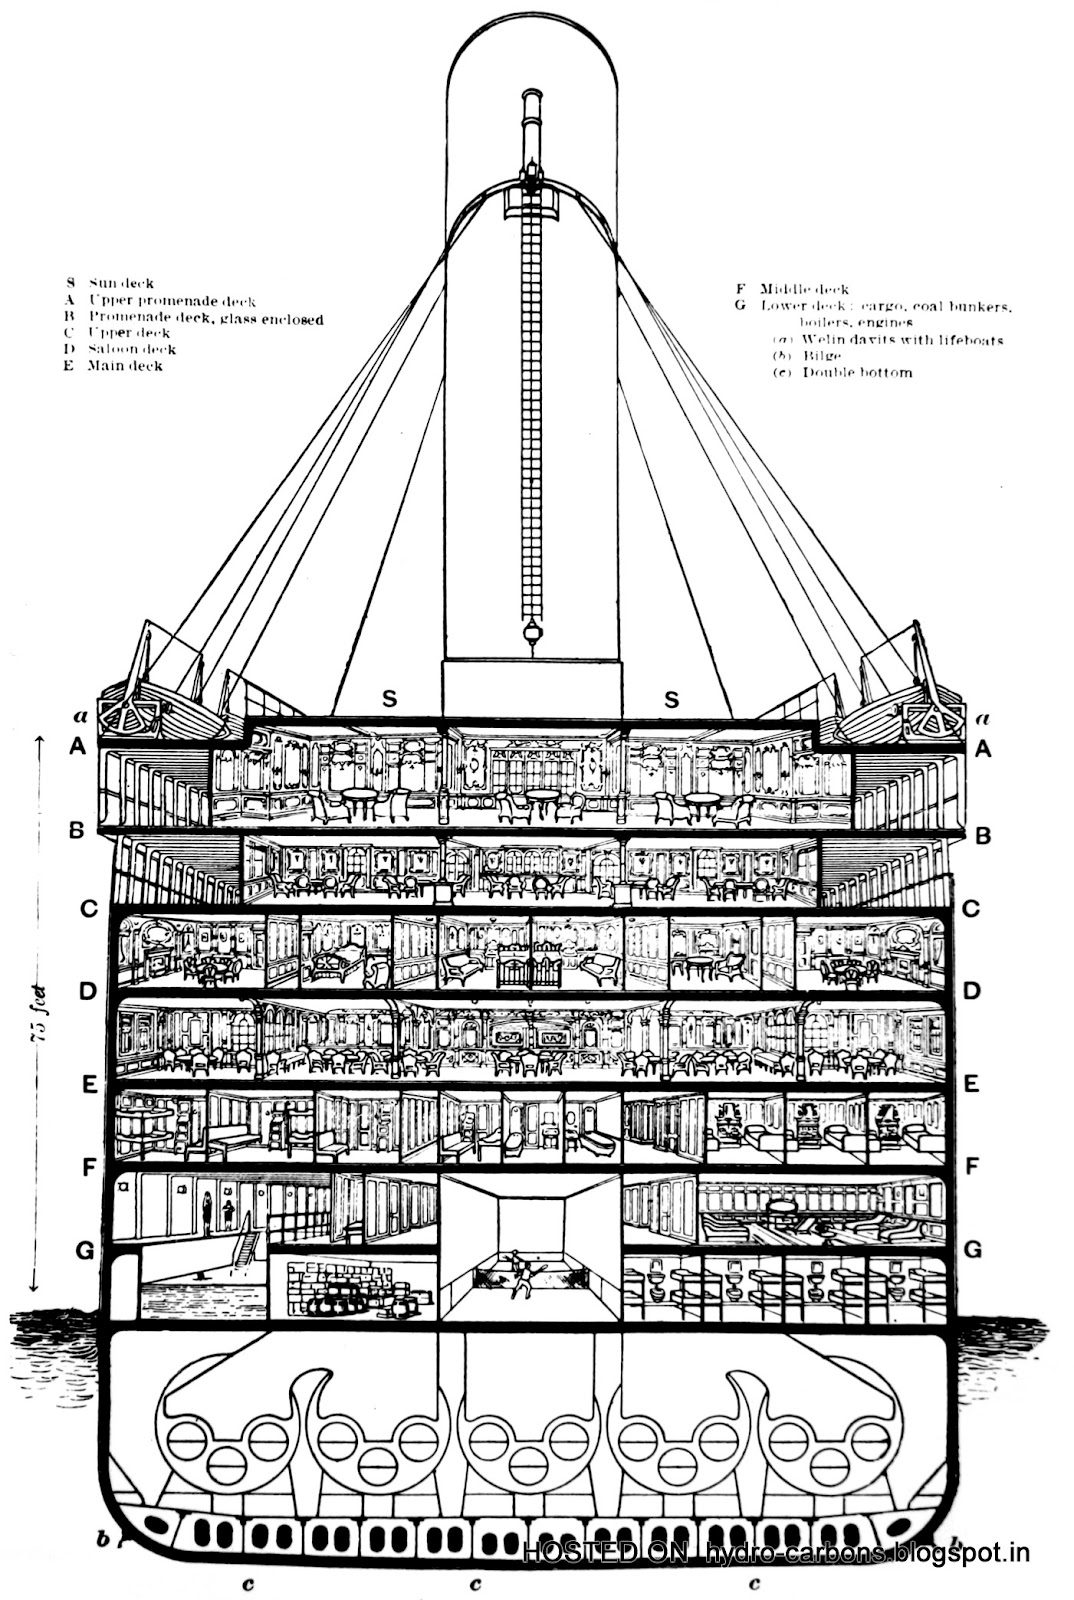 The R M S Titanic Specifications